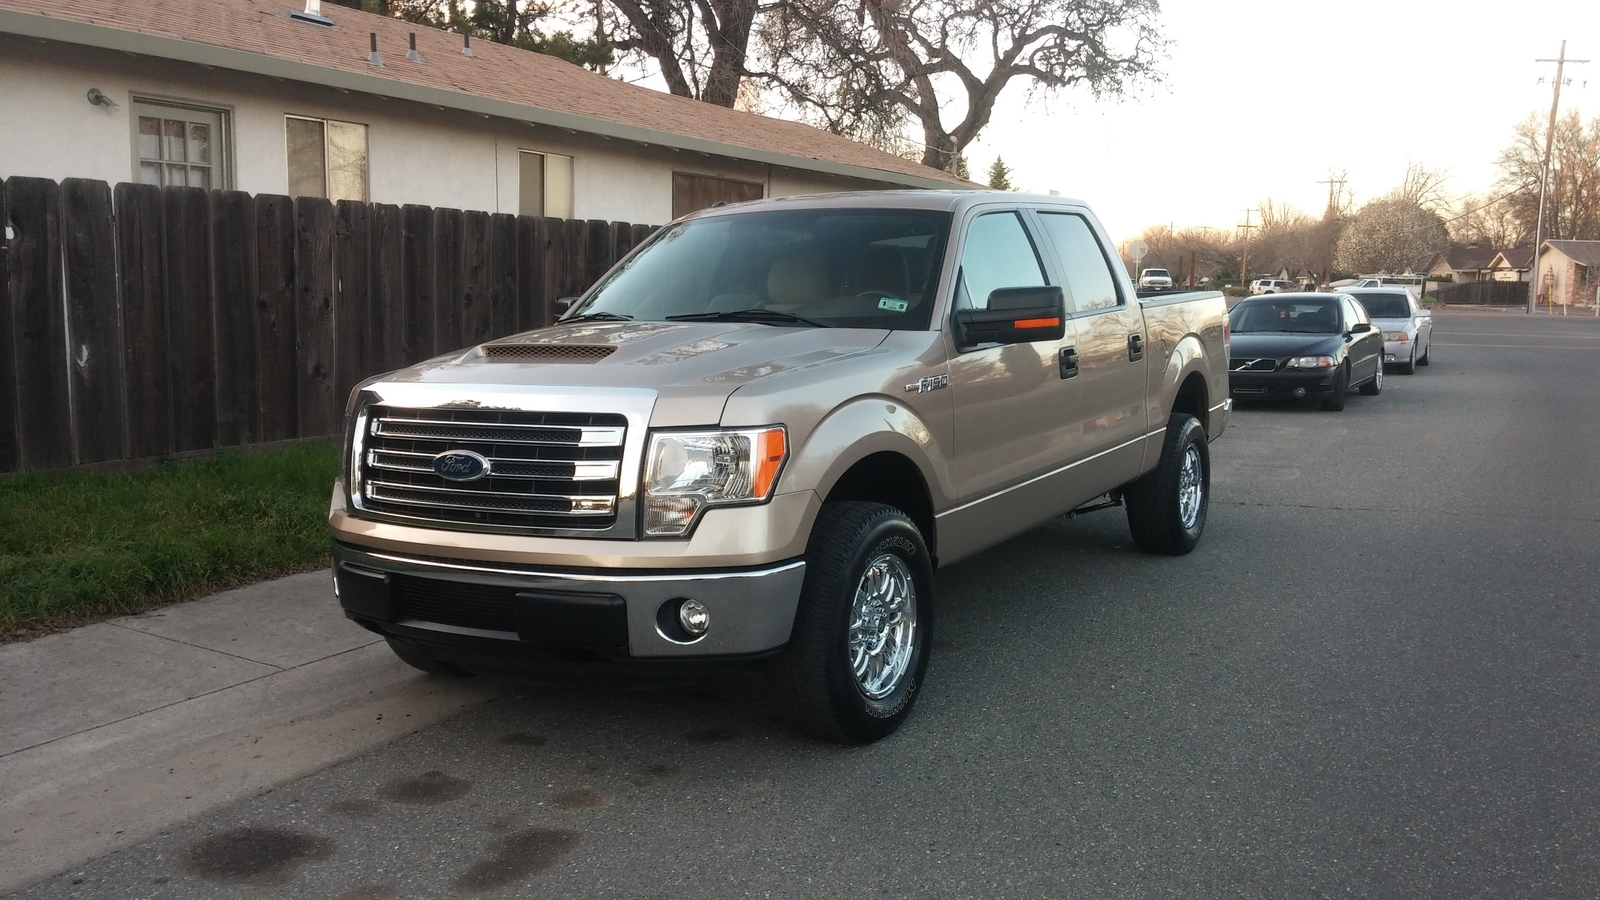 2012 Tan Ford F150 XLT picture, mods, upgrades